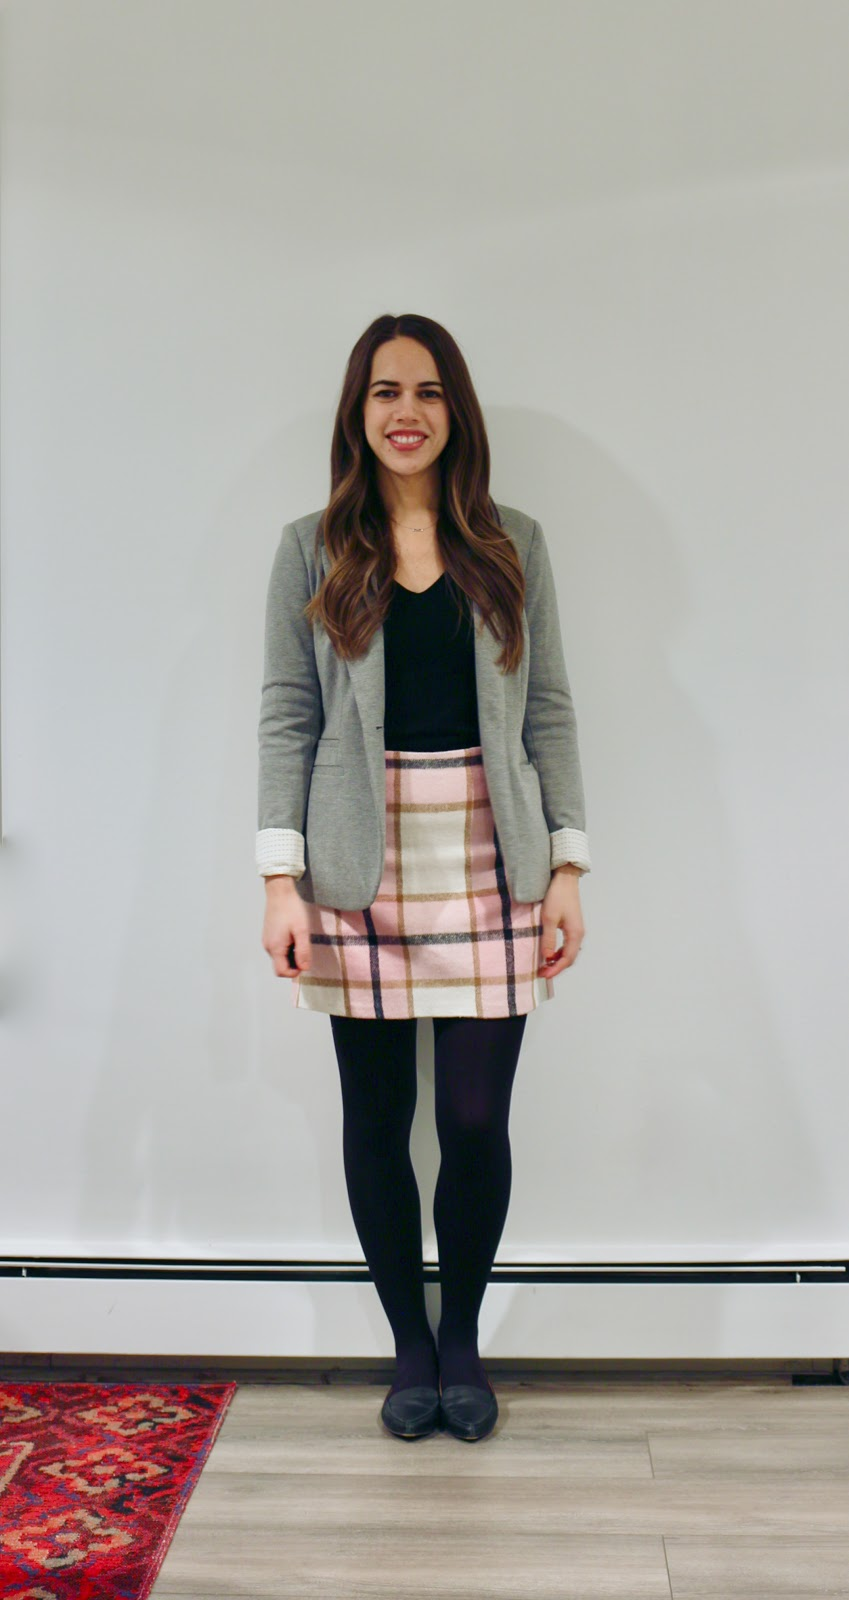 Jules in Flats - Pink Check Mini Skirt with Grey Blazer (Business Casual Winter Workwear on a Budget)